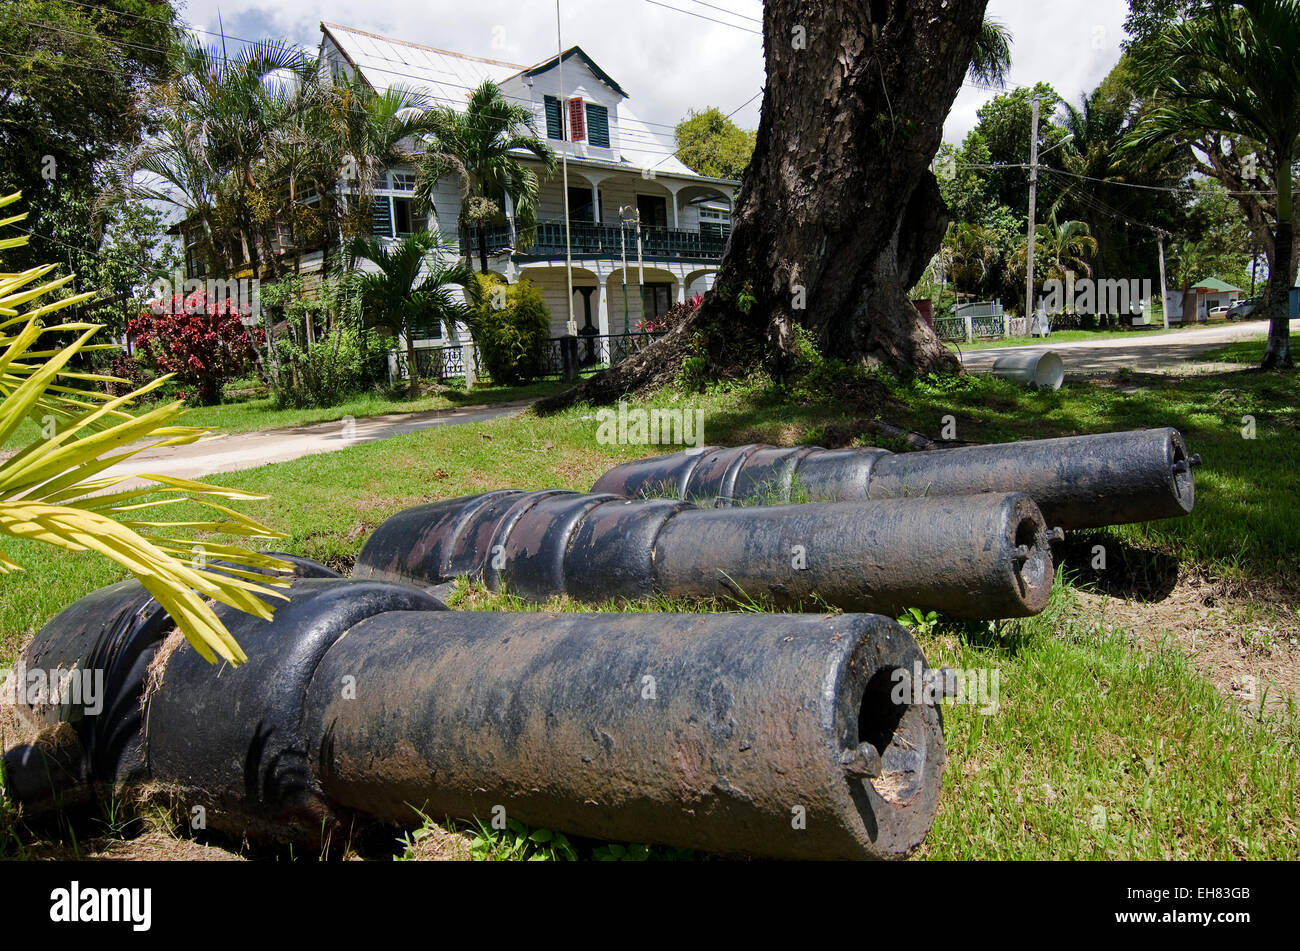 Officers house in the old garrison near the confluence of the Suriname and Commewijne Rivers, Paramaribo, Suriname - Stock Image